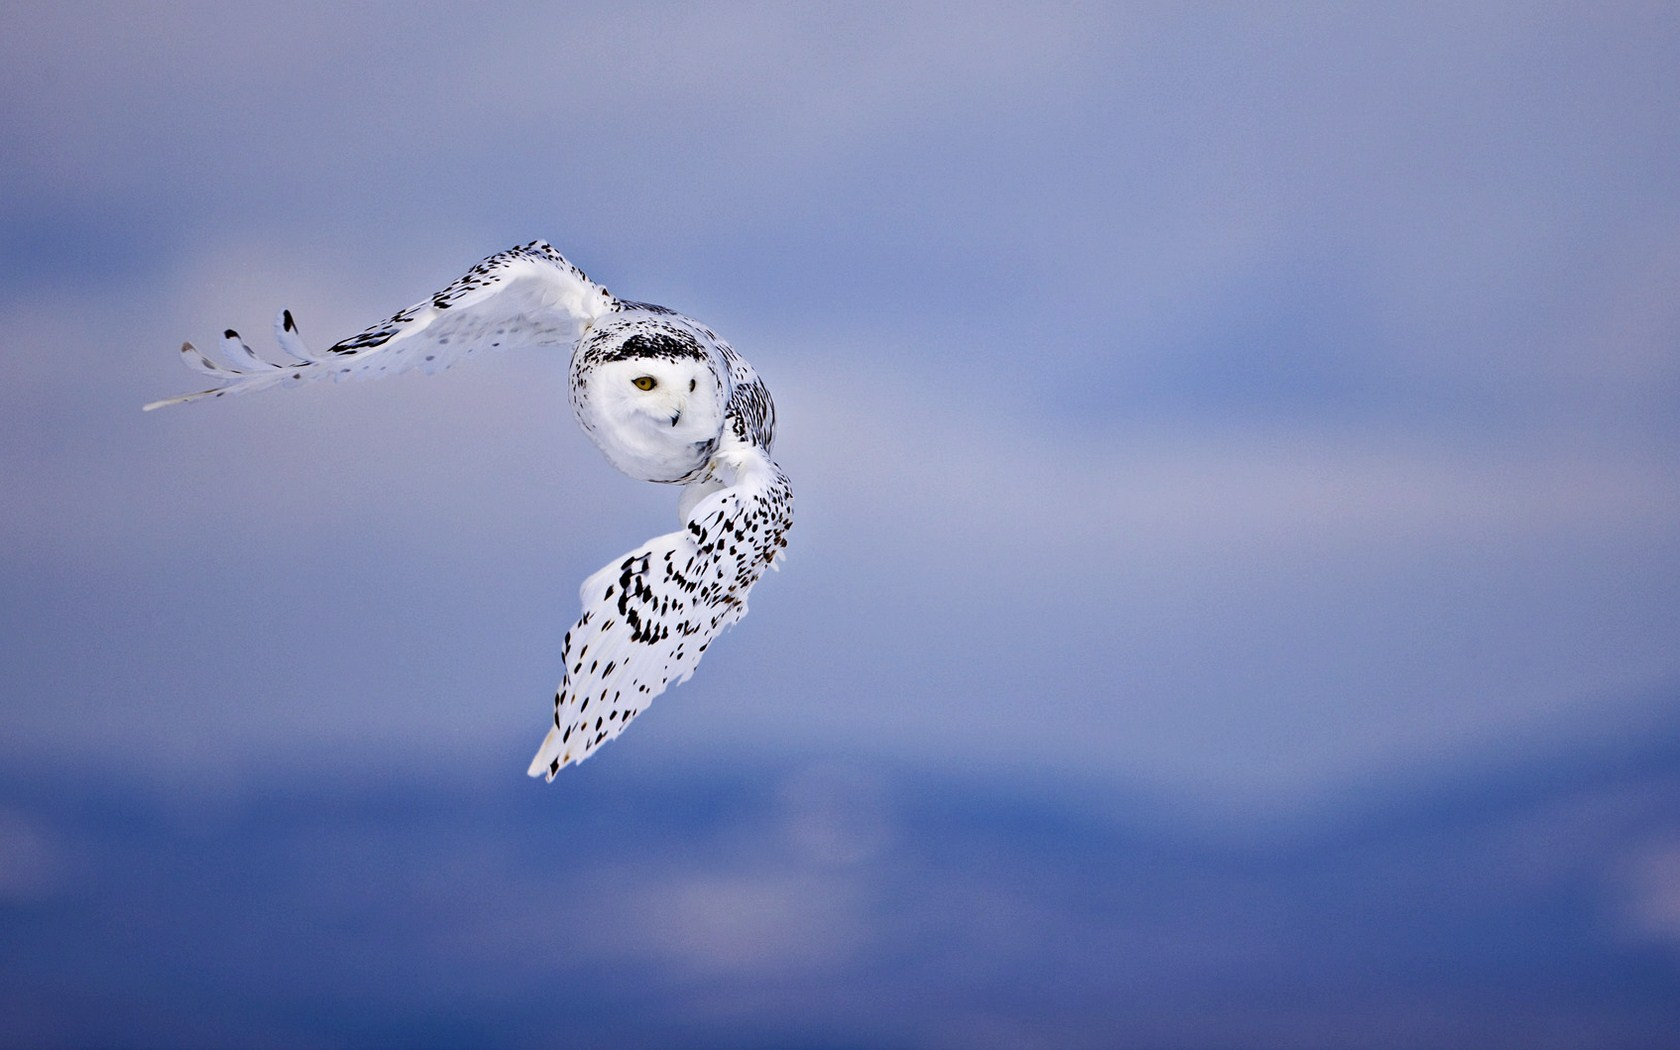 Flying Owl Wallpaper 1680x1050